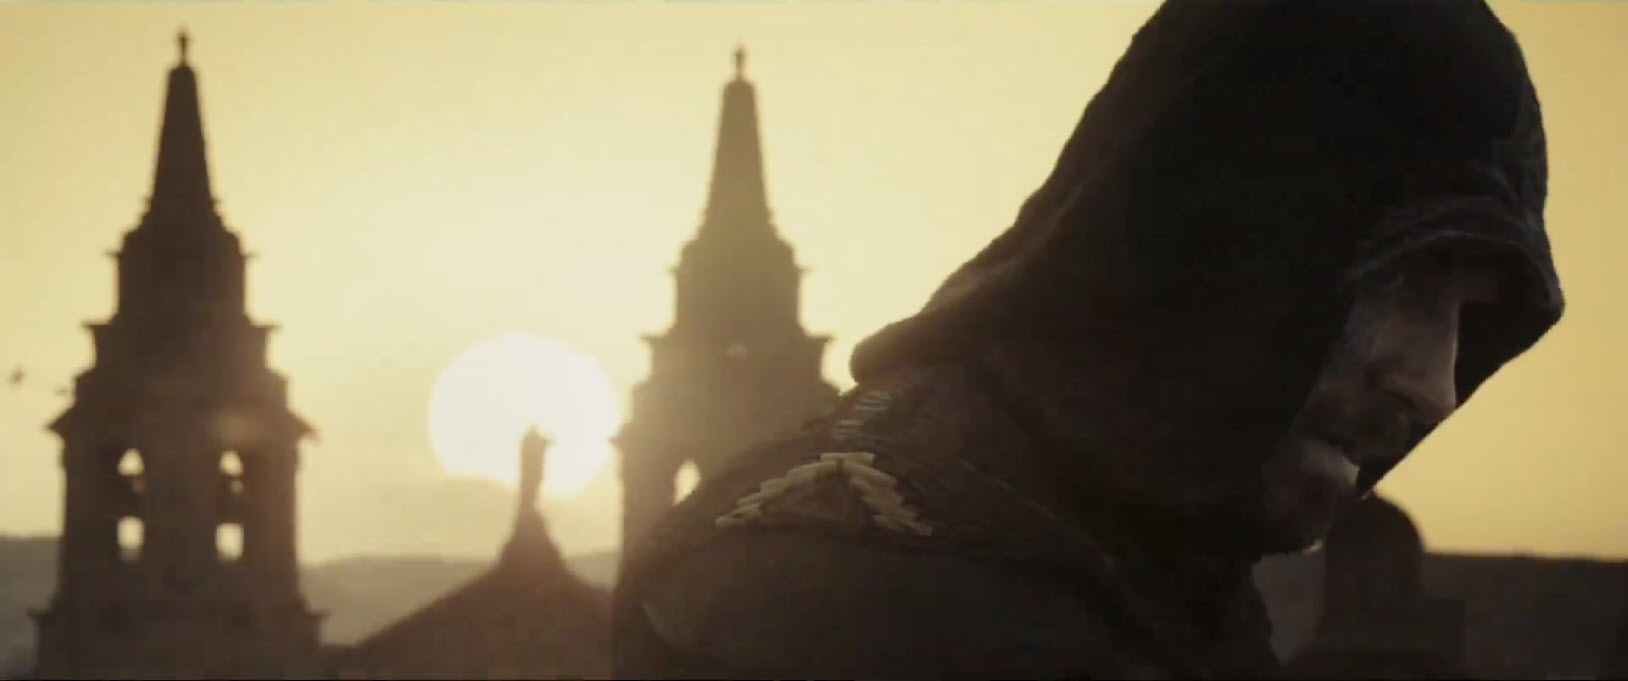 michael fassbender robed in assassins creed